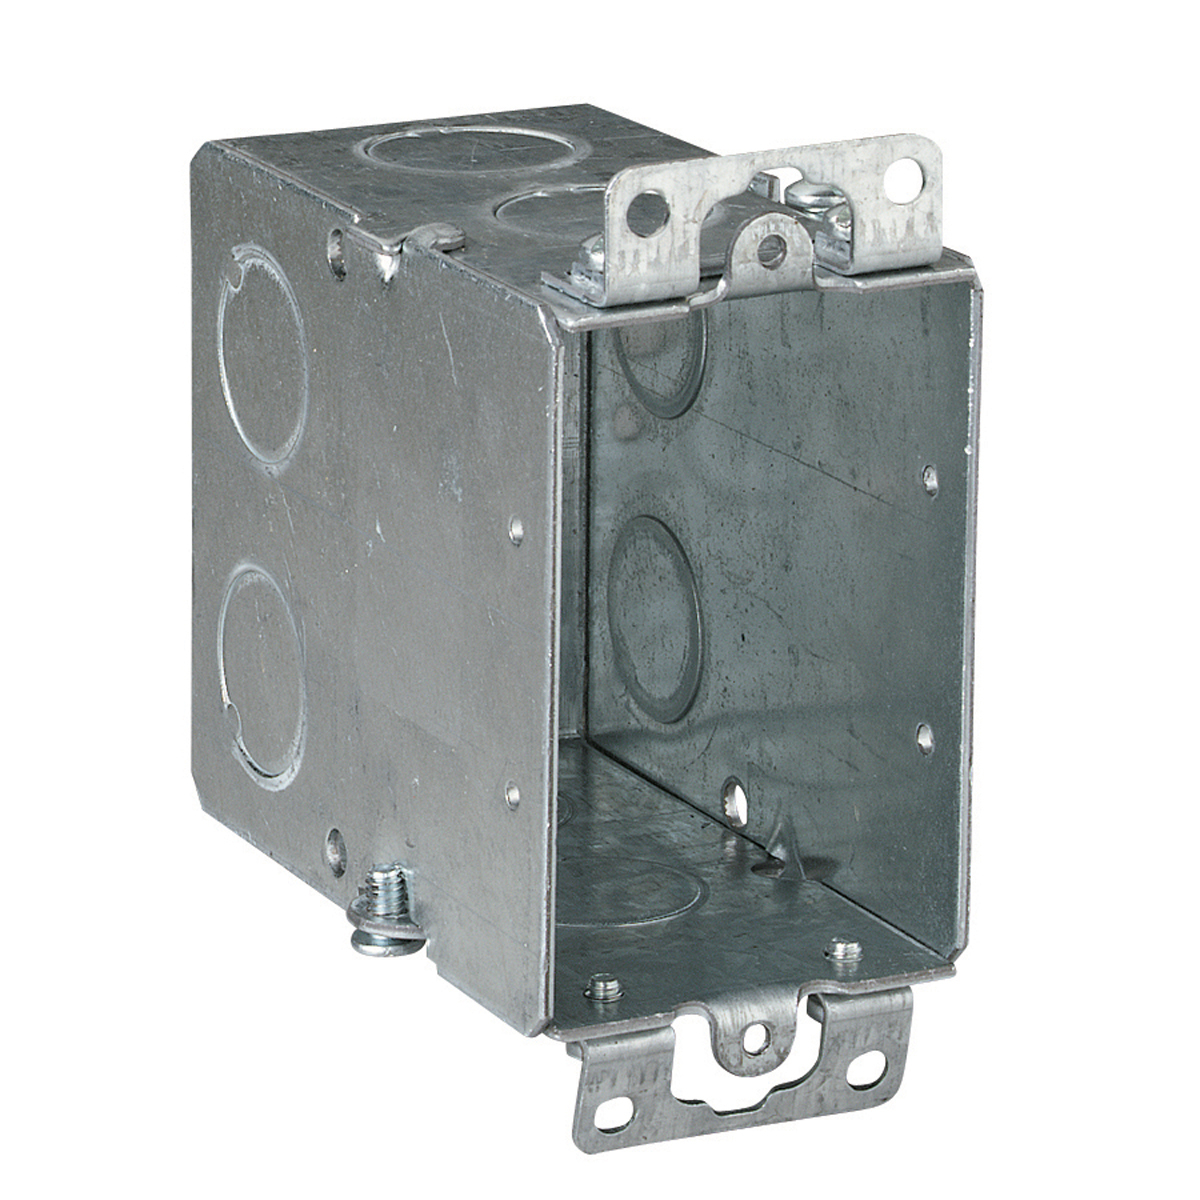 Steel City,CY-1/2,Steel City® CY-1/2 Gangable Switch Box, Steel, 18 cu-in, 1 Gang, 5 Knockouts